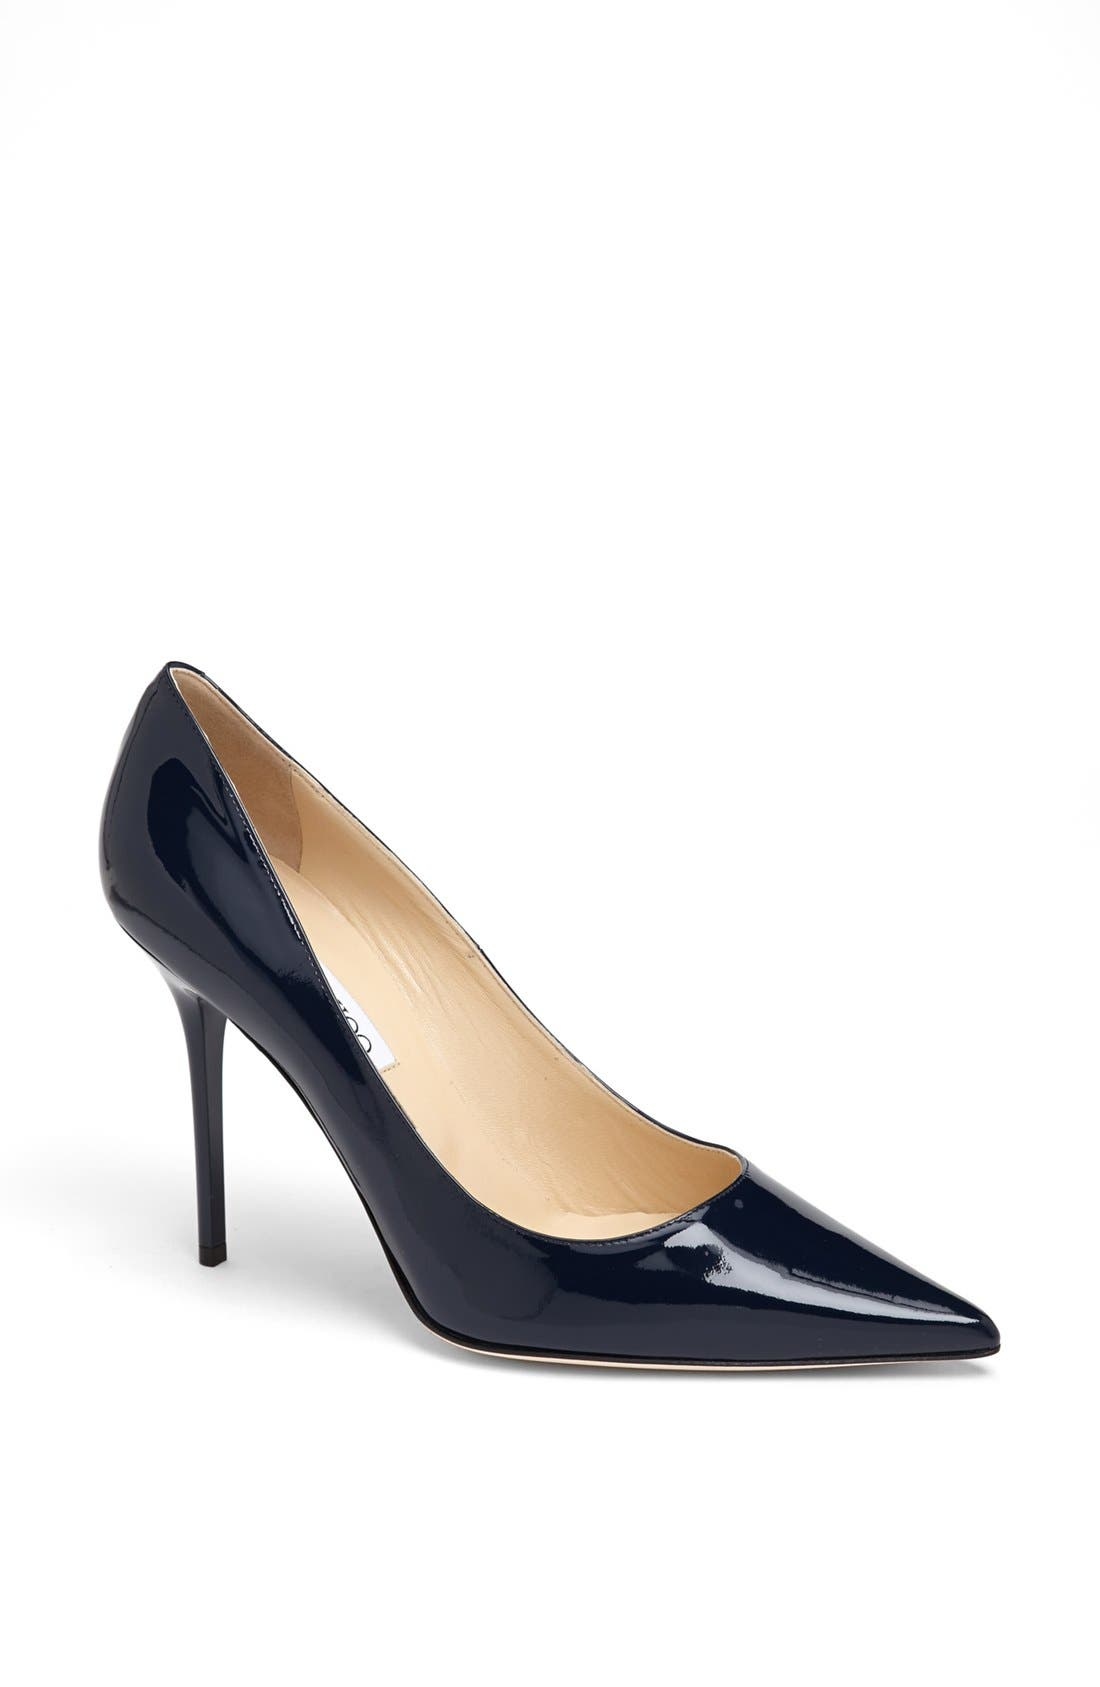 Alternate Image 1 Selected - Jimmy Choo 'Abel' Pointy Toe Pump (Women)